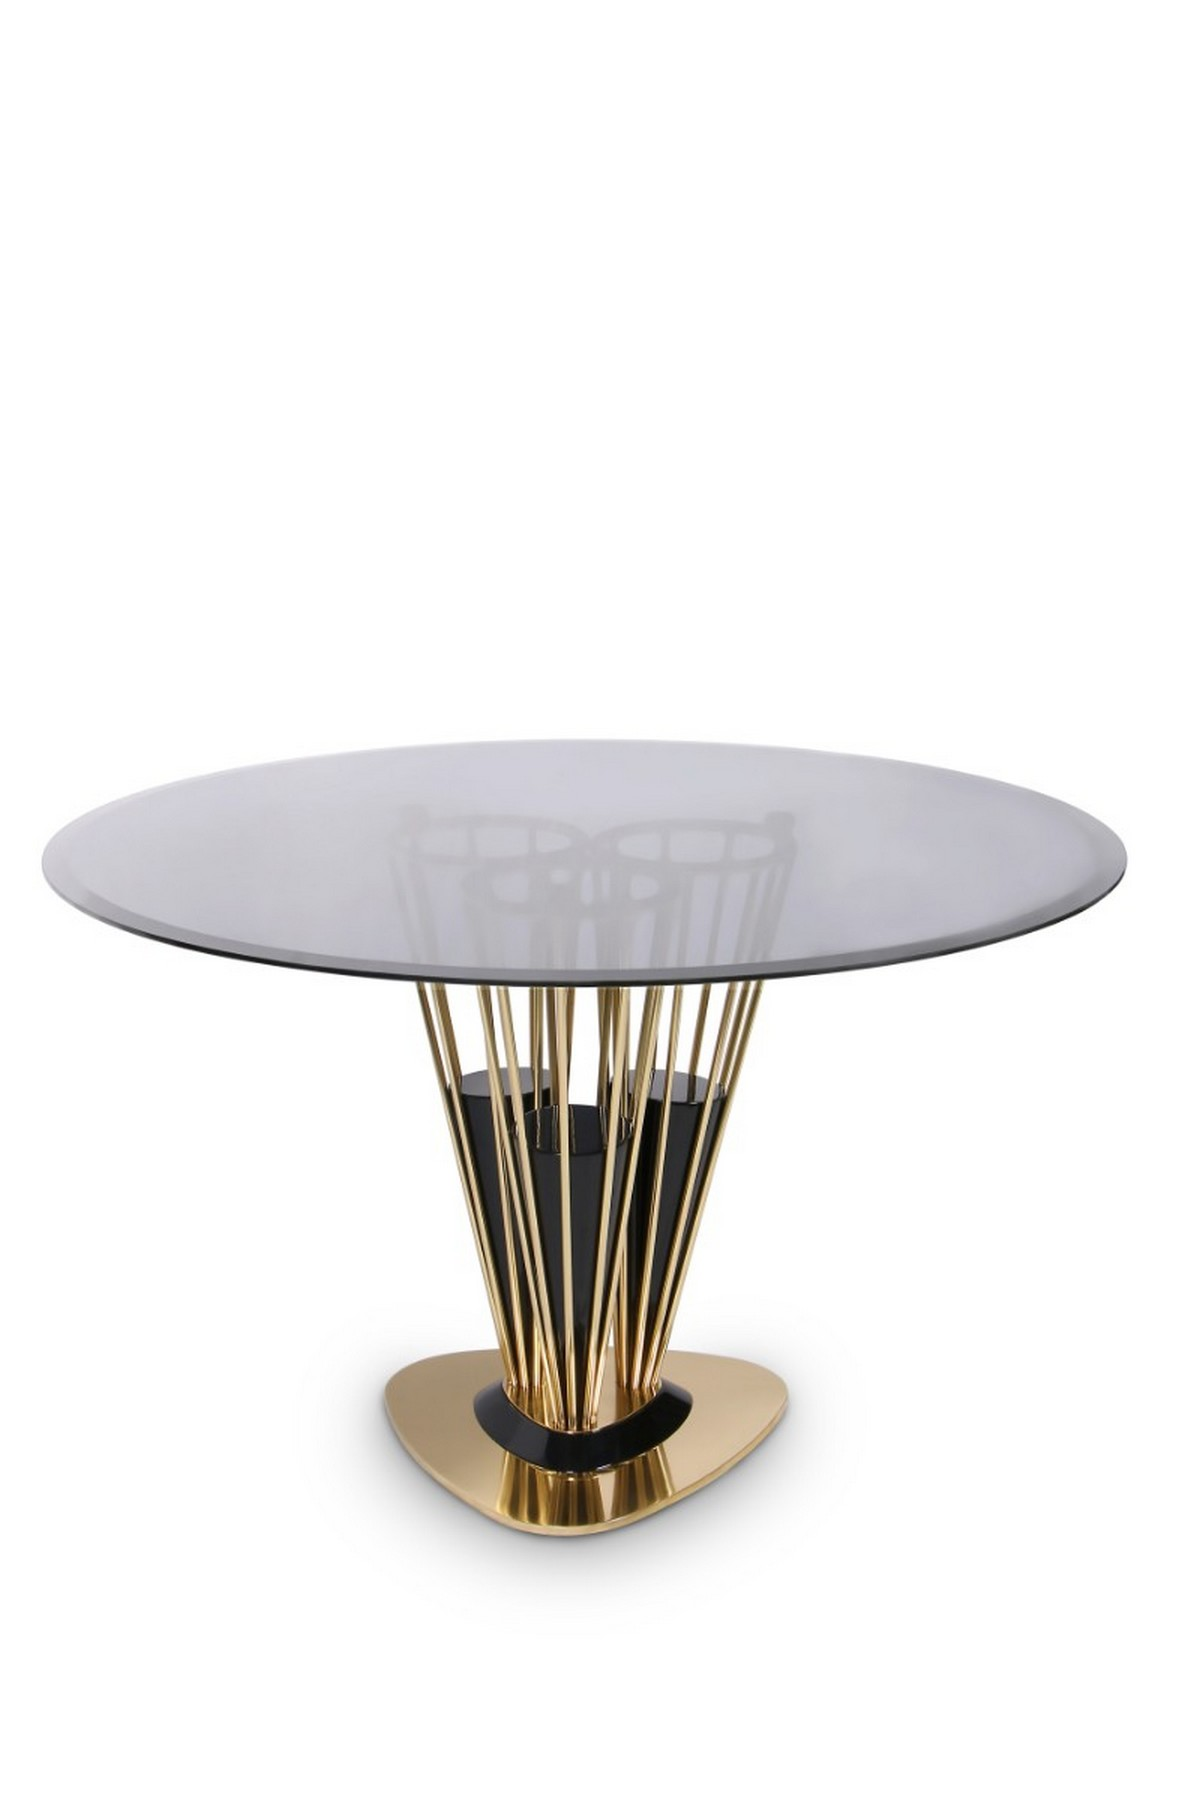 Exclusive Design: Top Round Dining Tables exclusive design Exclusive Design: Top Round Dining Tables winchester2